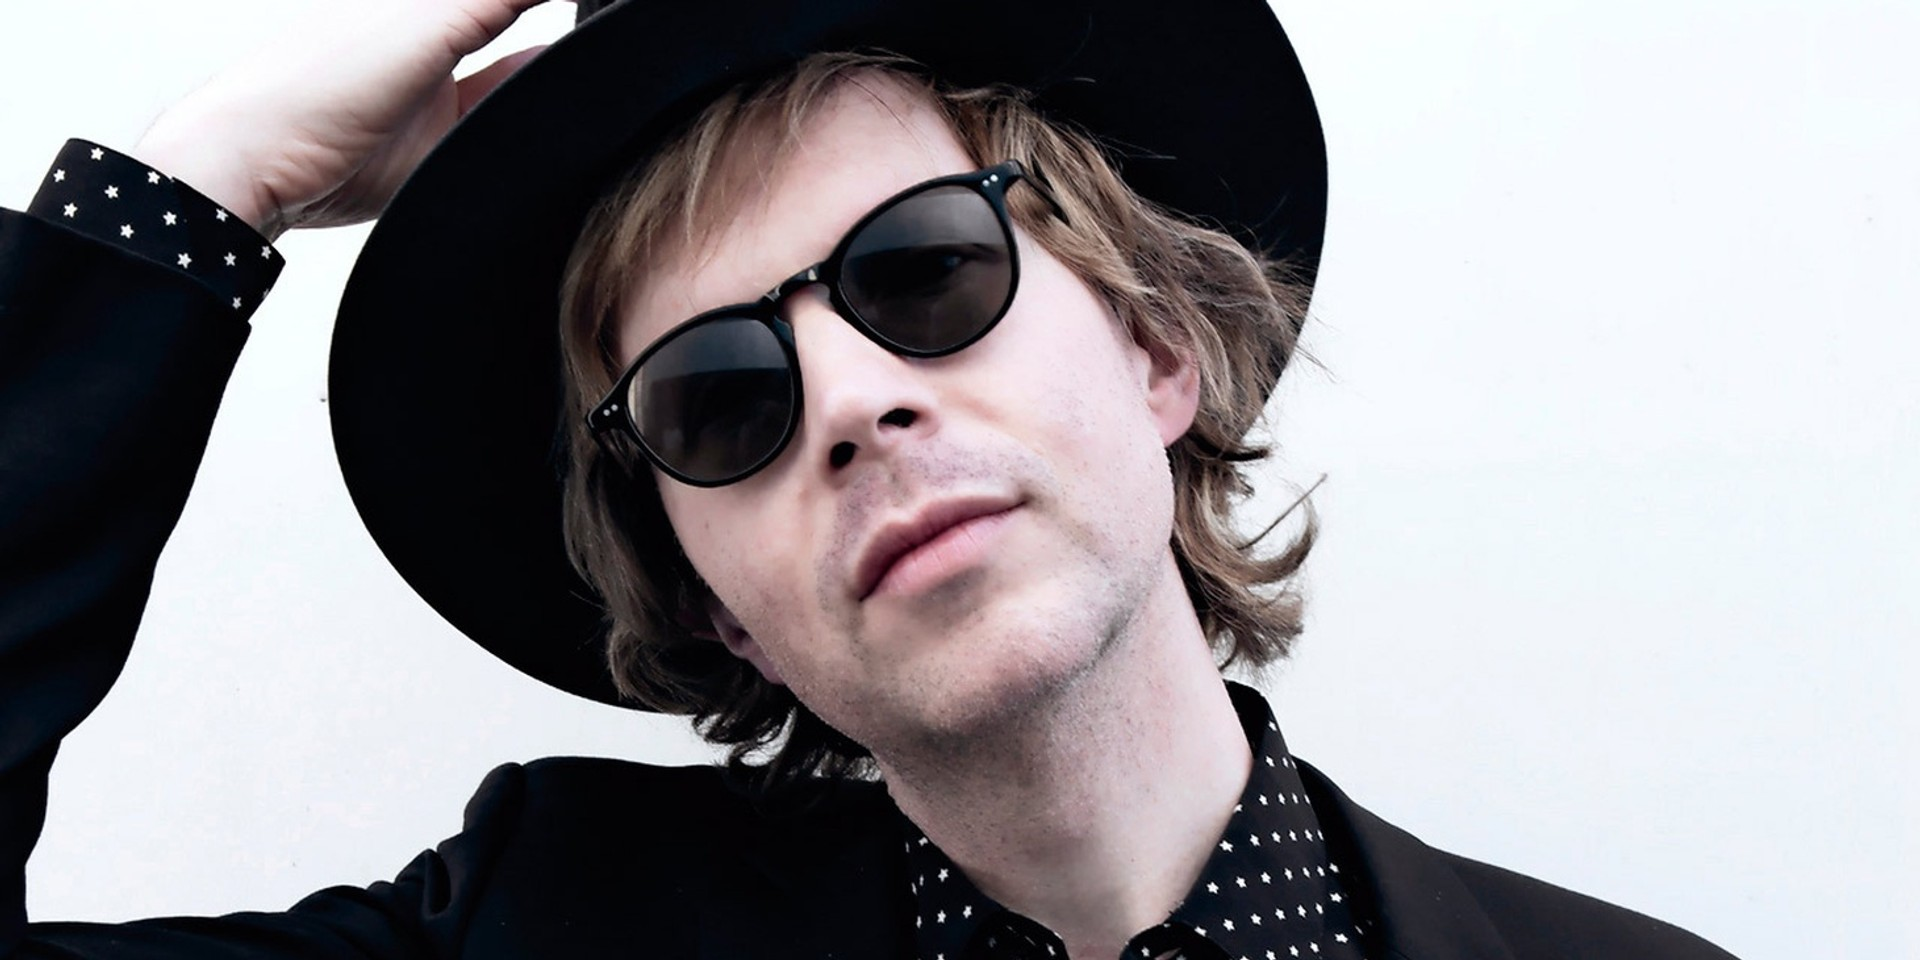 Beck releases two songs 'Hyperlife' and 'Uneventful Days' off his upcoming album, Hyperspace